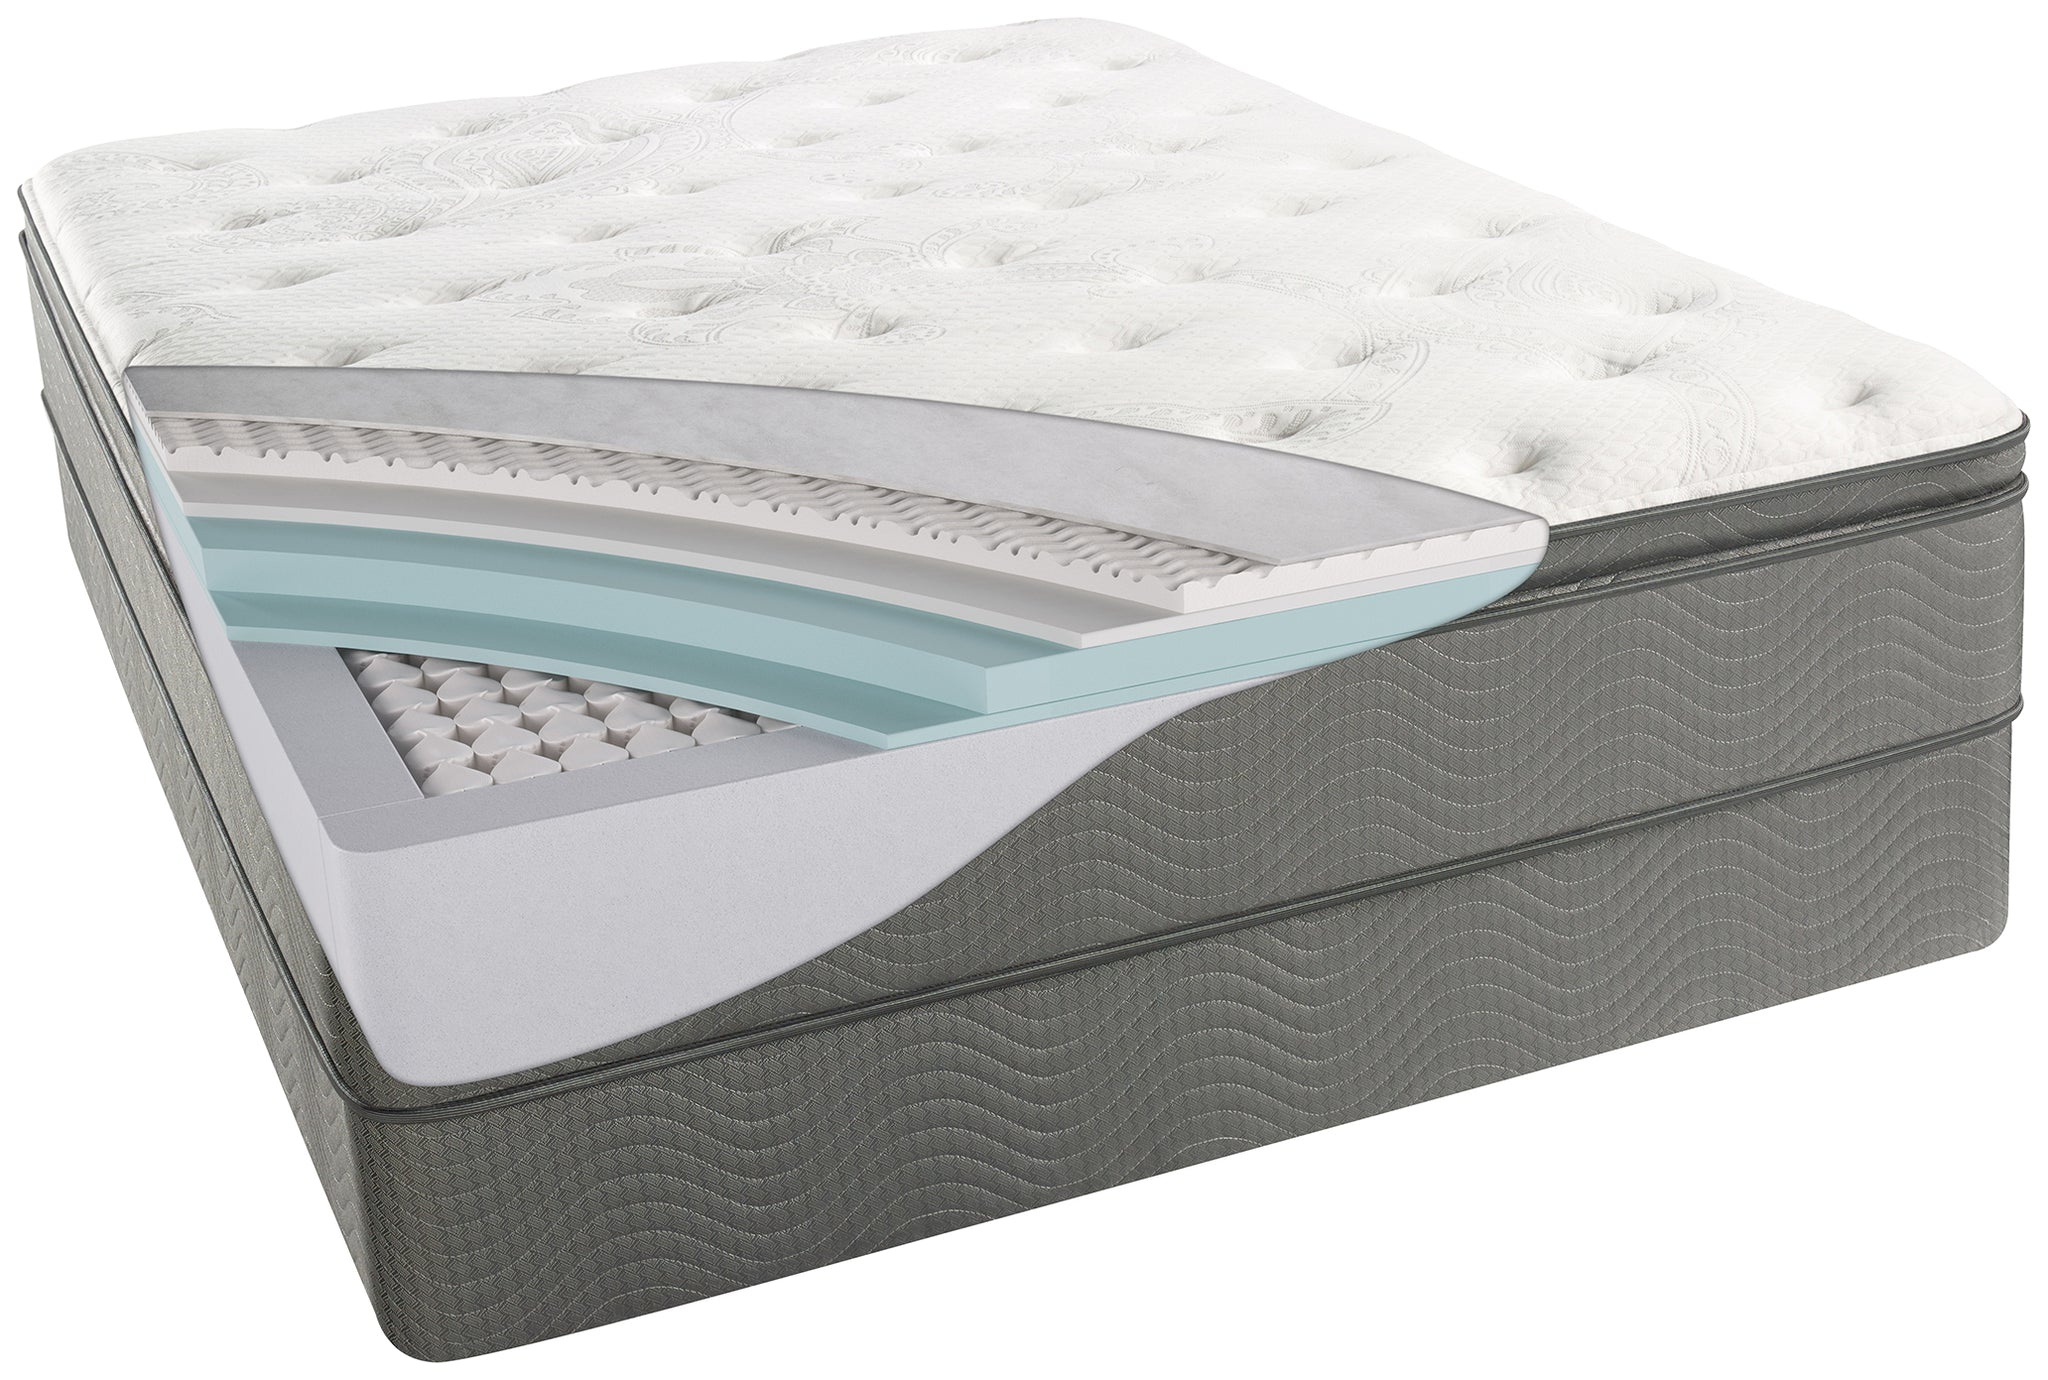 products certified natural mattress myorganicsleep my latex all pillow support organic sleep system topper cotton